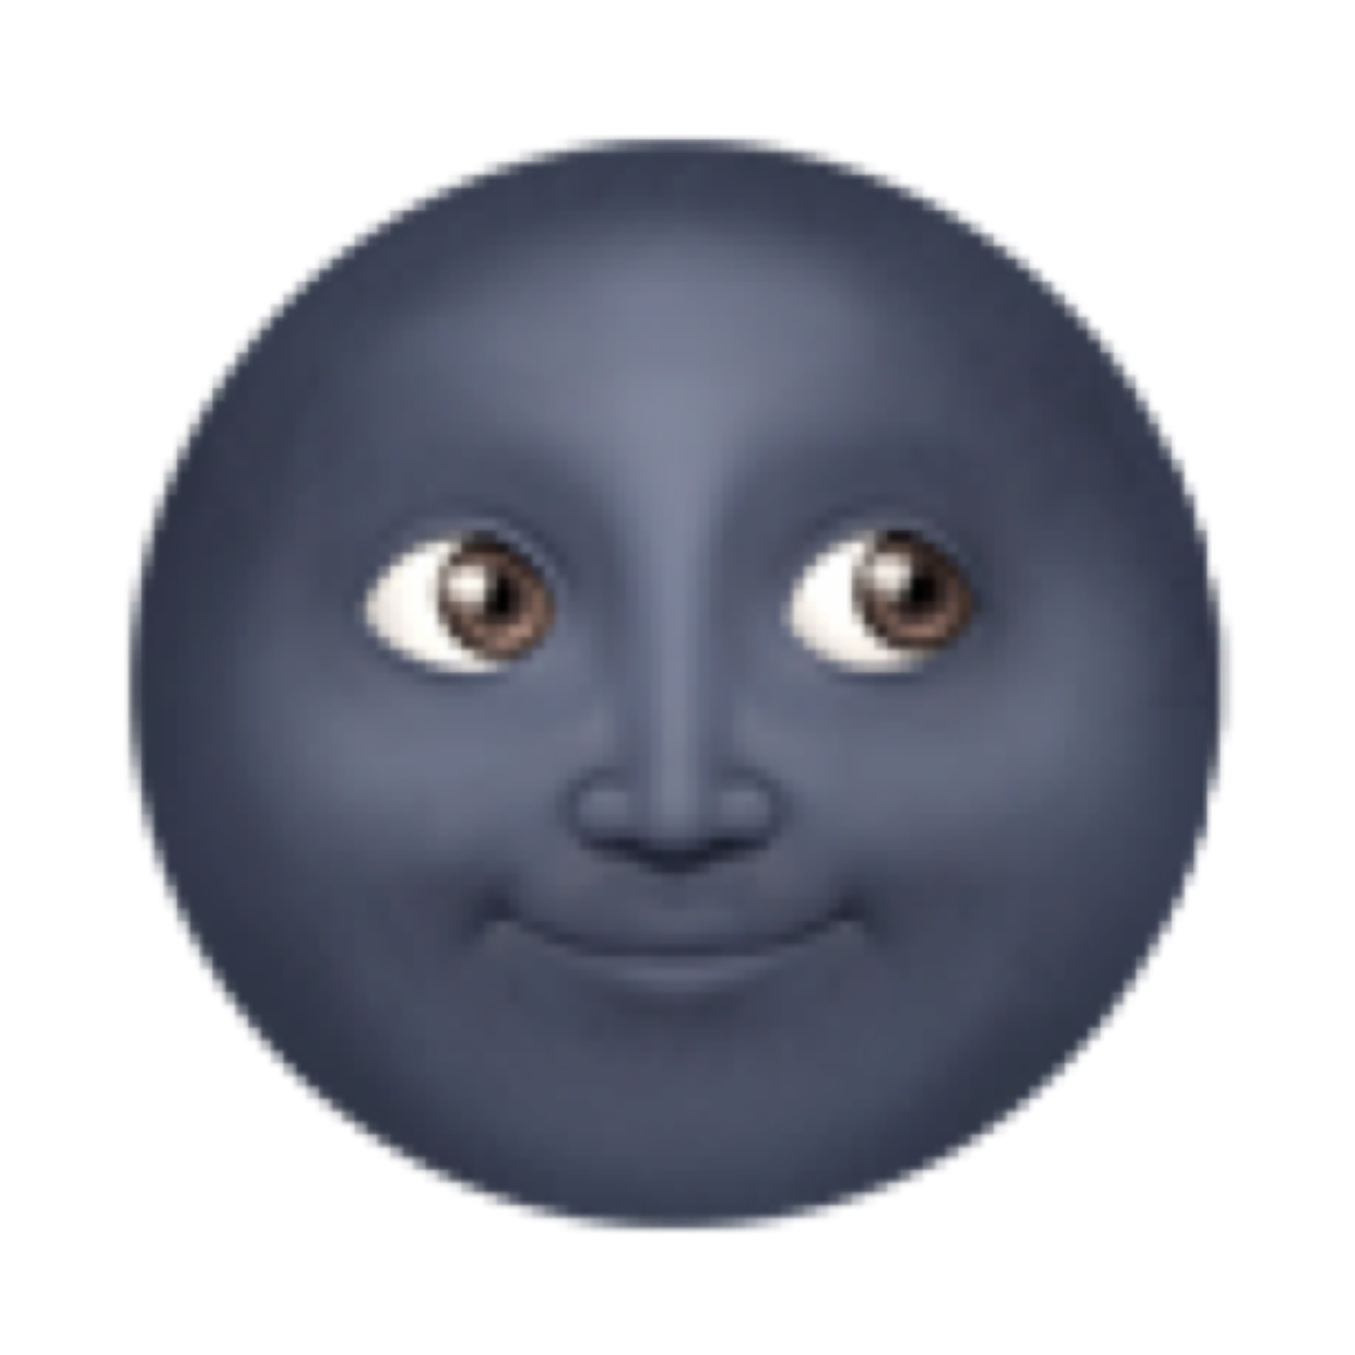 moon emoji moonemoji blackmoon black dark darkmoon ��fr